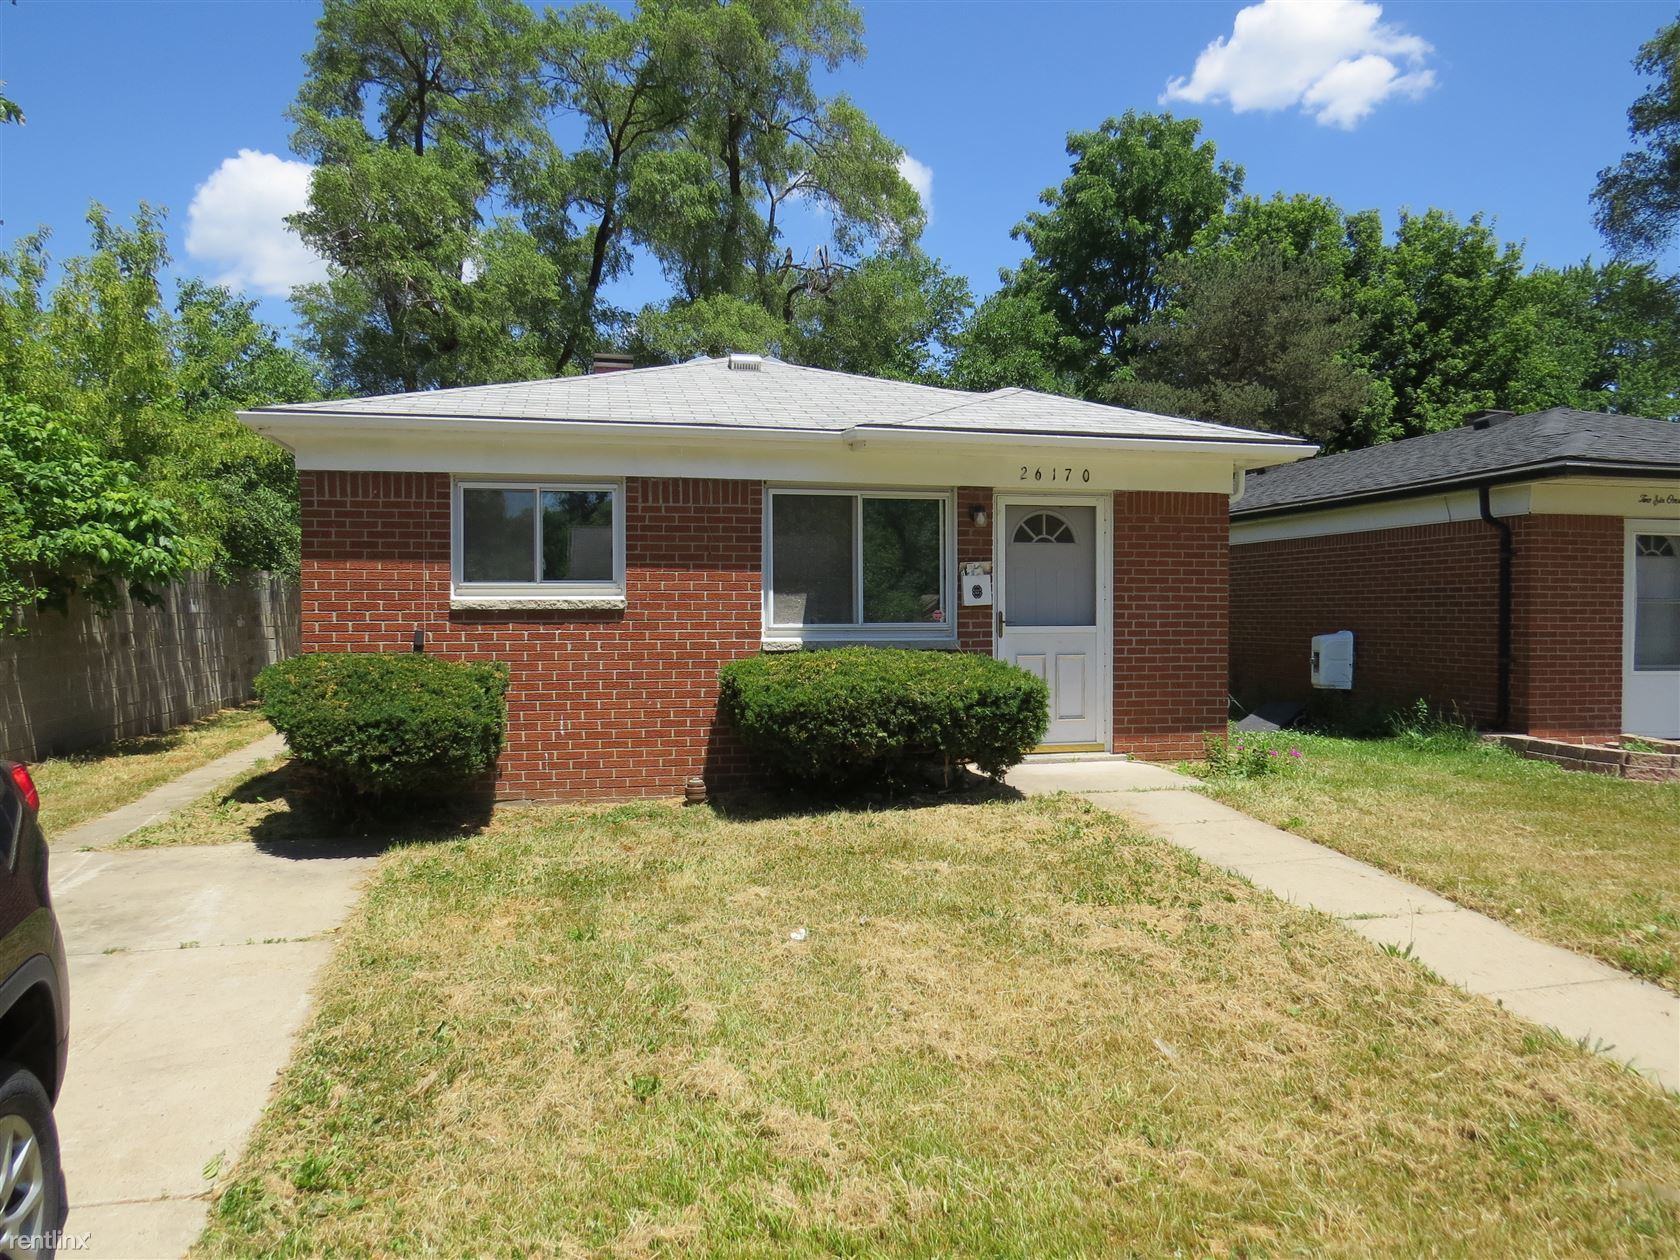 House for Rent in Dearborn Heights